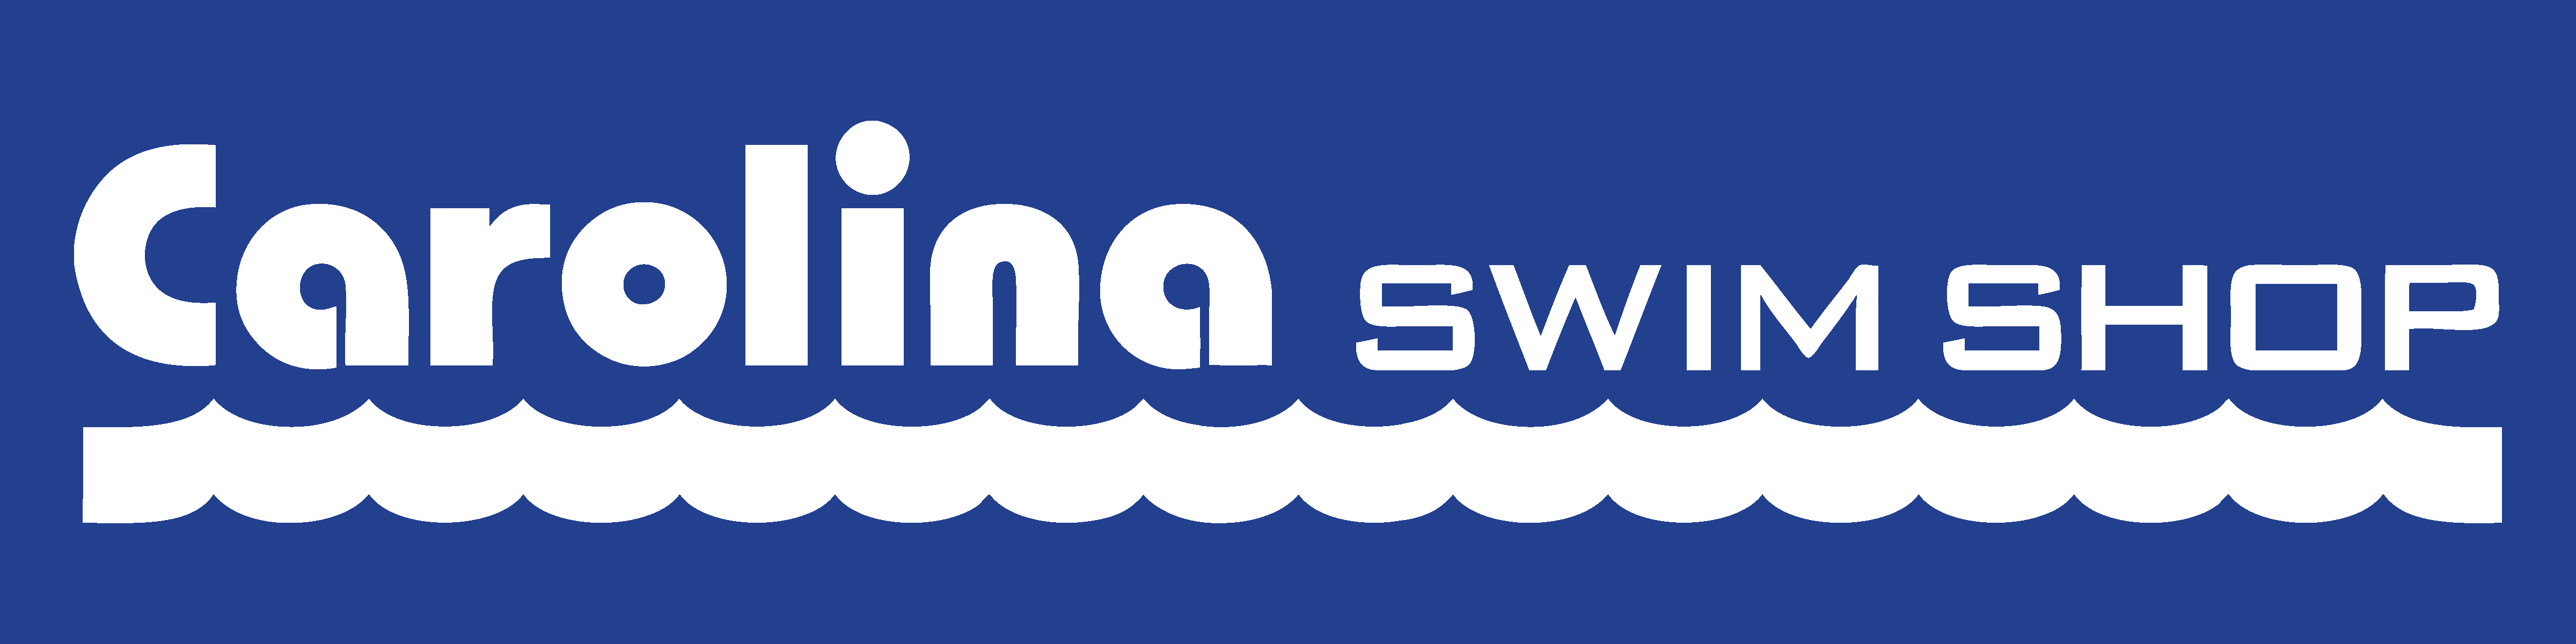 Carolina-Swim-Shop-1x4-blue-background.png